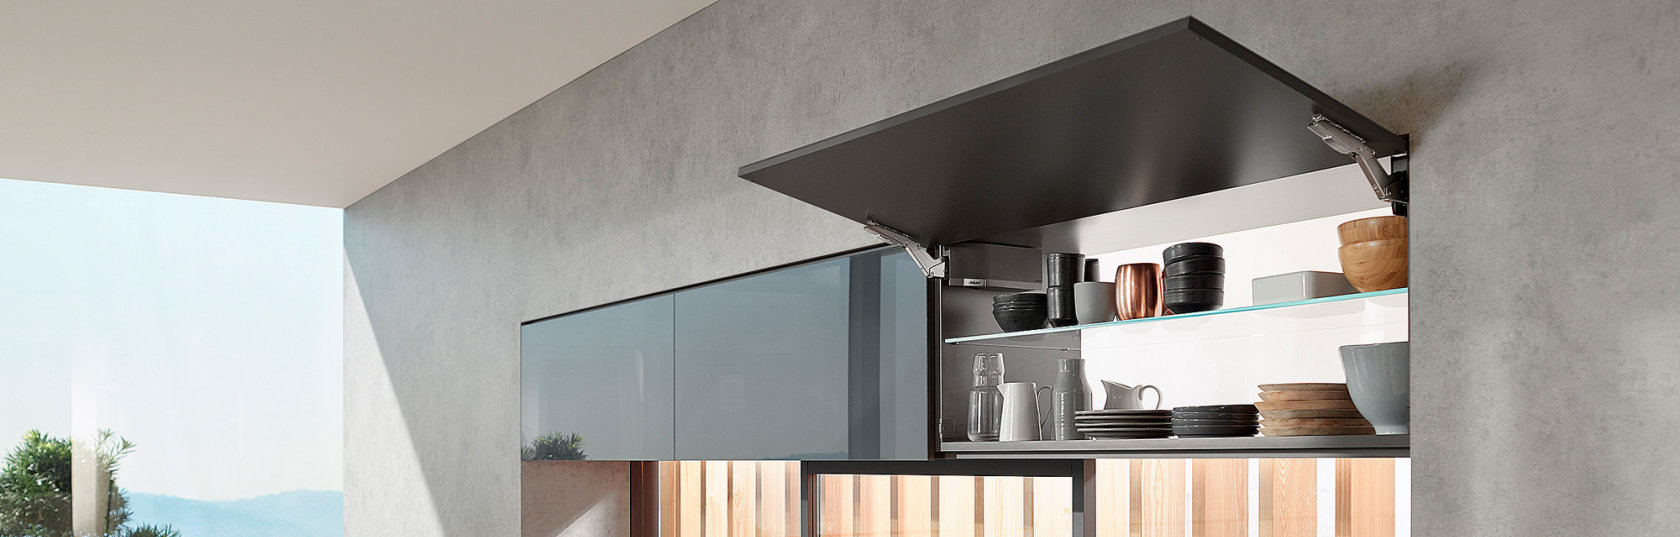 Give cabinet designs a lift with the AVENTOS HK top opening system